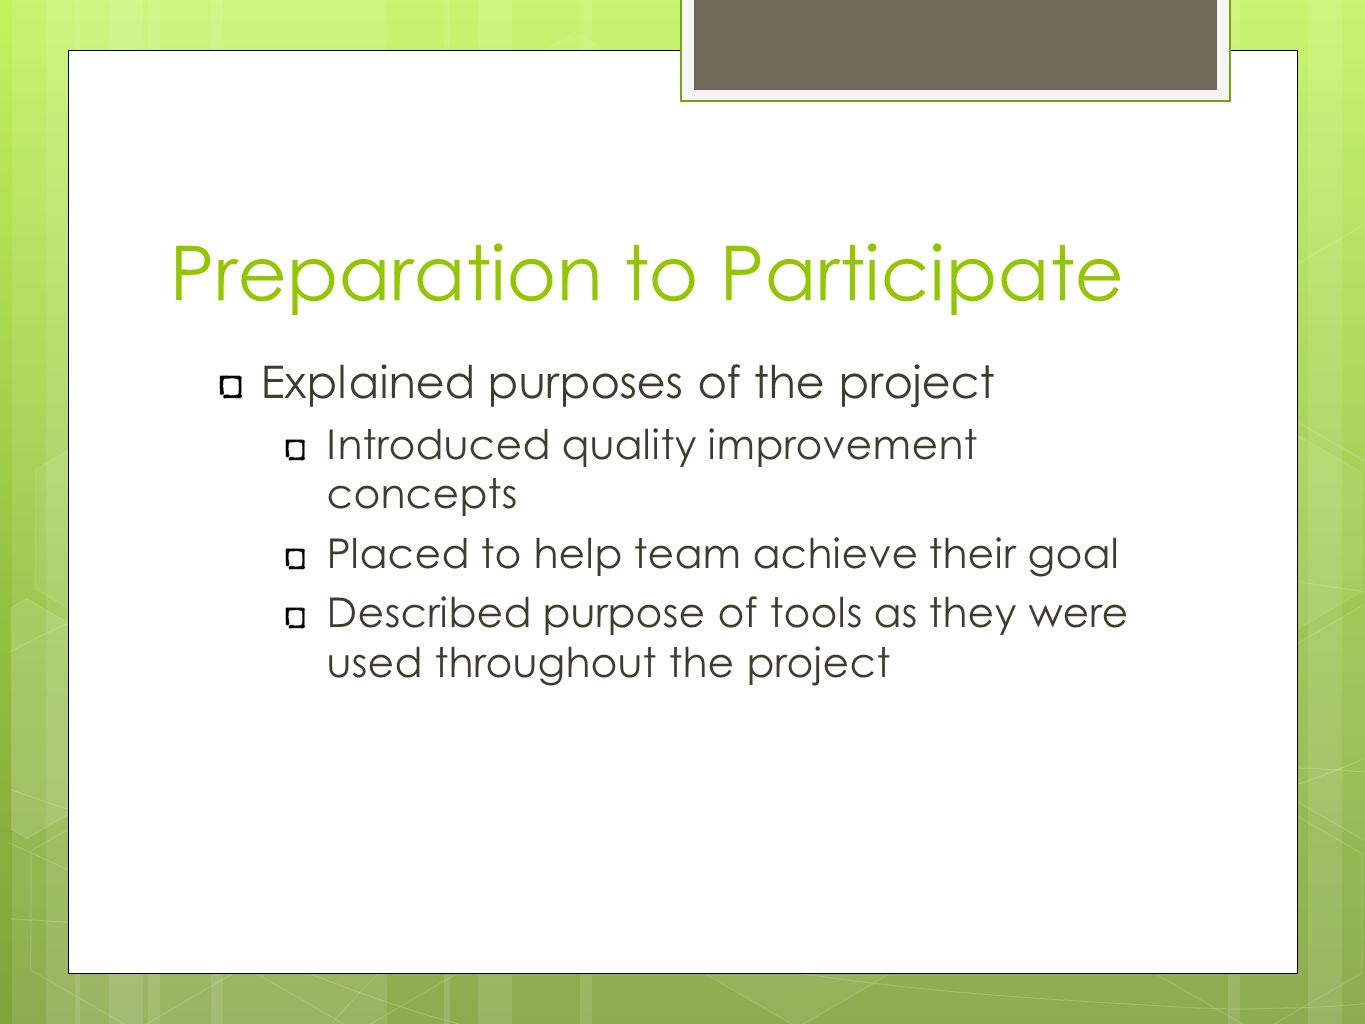 Preparation to Participate Explained purposes of the project Introduced quality improvement concepts Placed to help team achieve their goal Described purpose of tools as they were used throughout the project